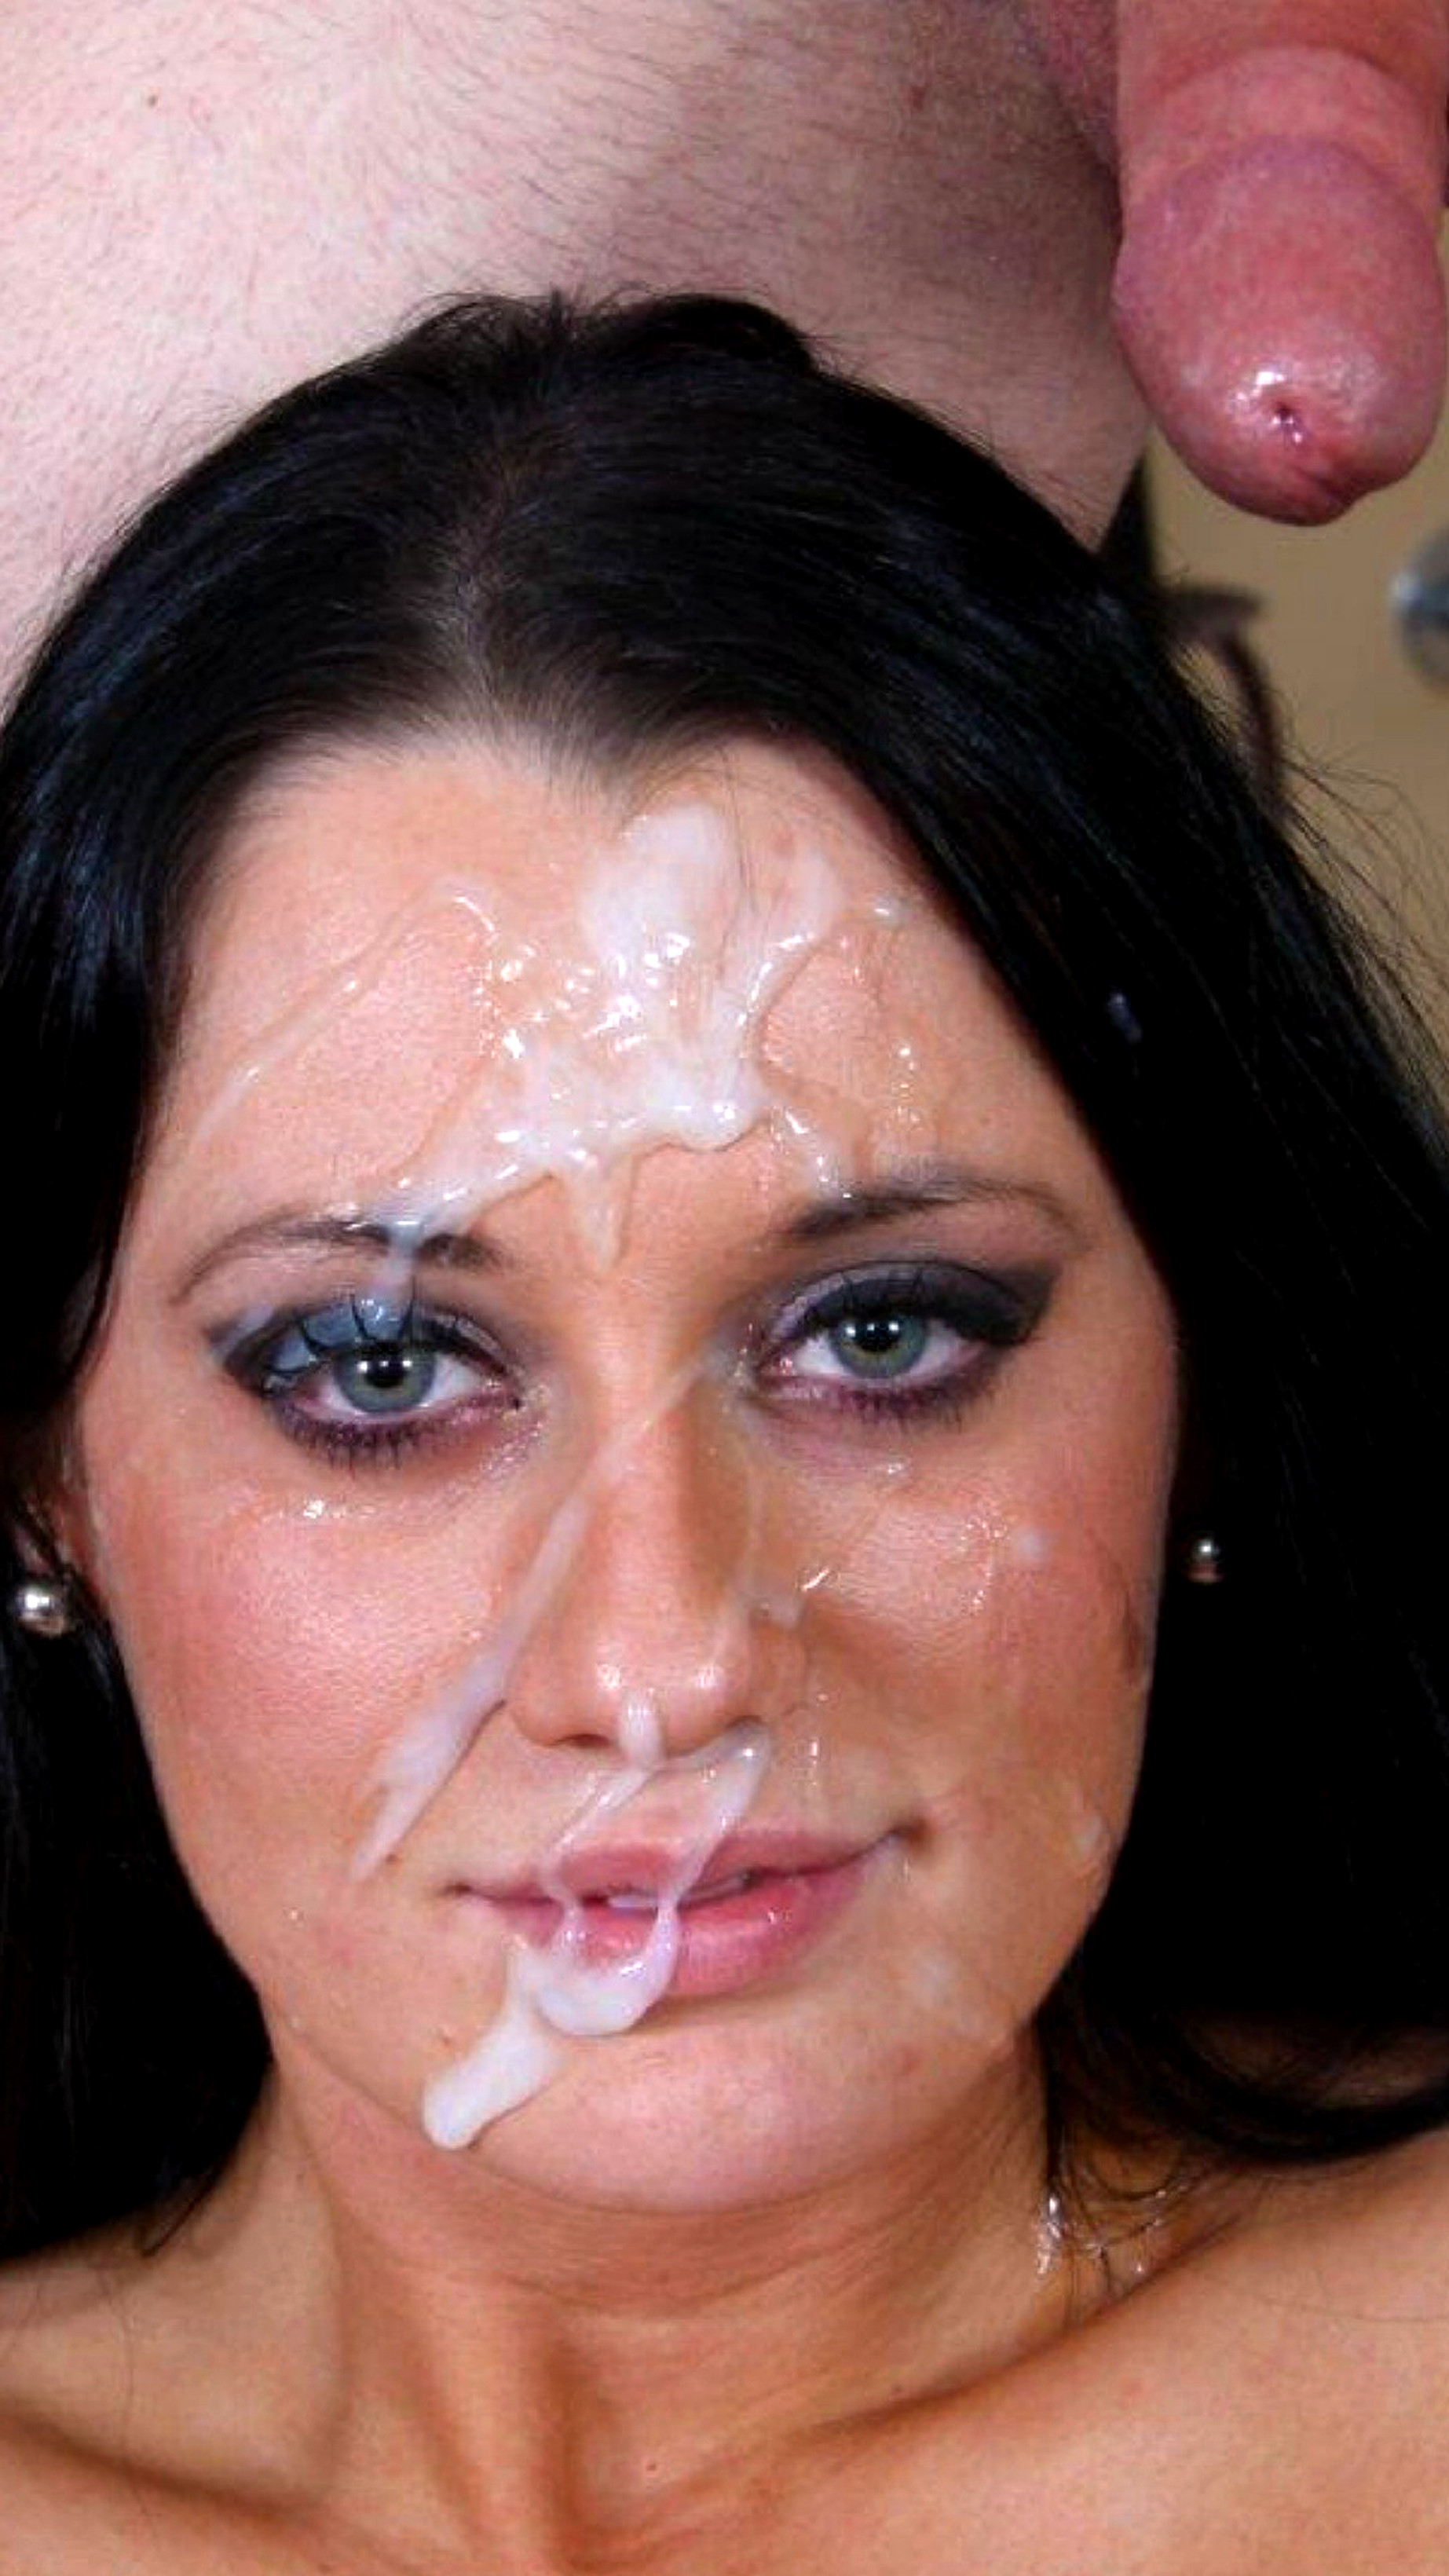 are not right. cleaning up cumshot from her face simply ridiculous. shame!